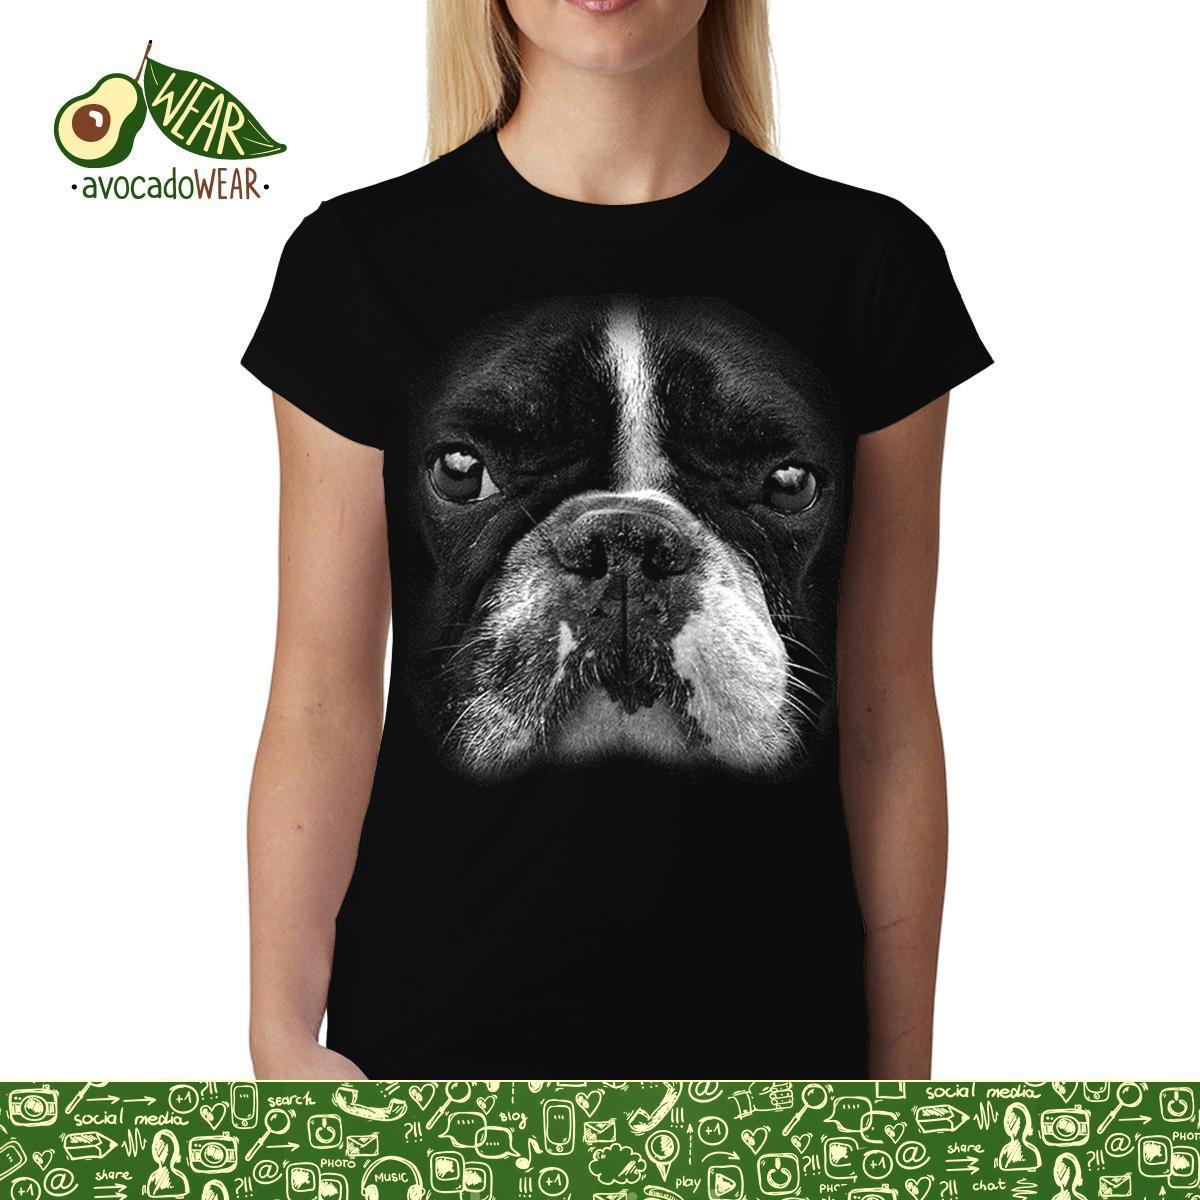 Boston Terrier Face Animals Women T-shirt M-3XL NewStreetwear Funny Print Clothing Hip-Tope Mans T-Shirt Tops Tees Hot Sale Men